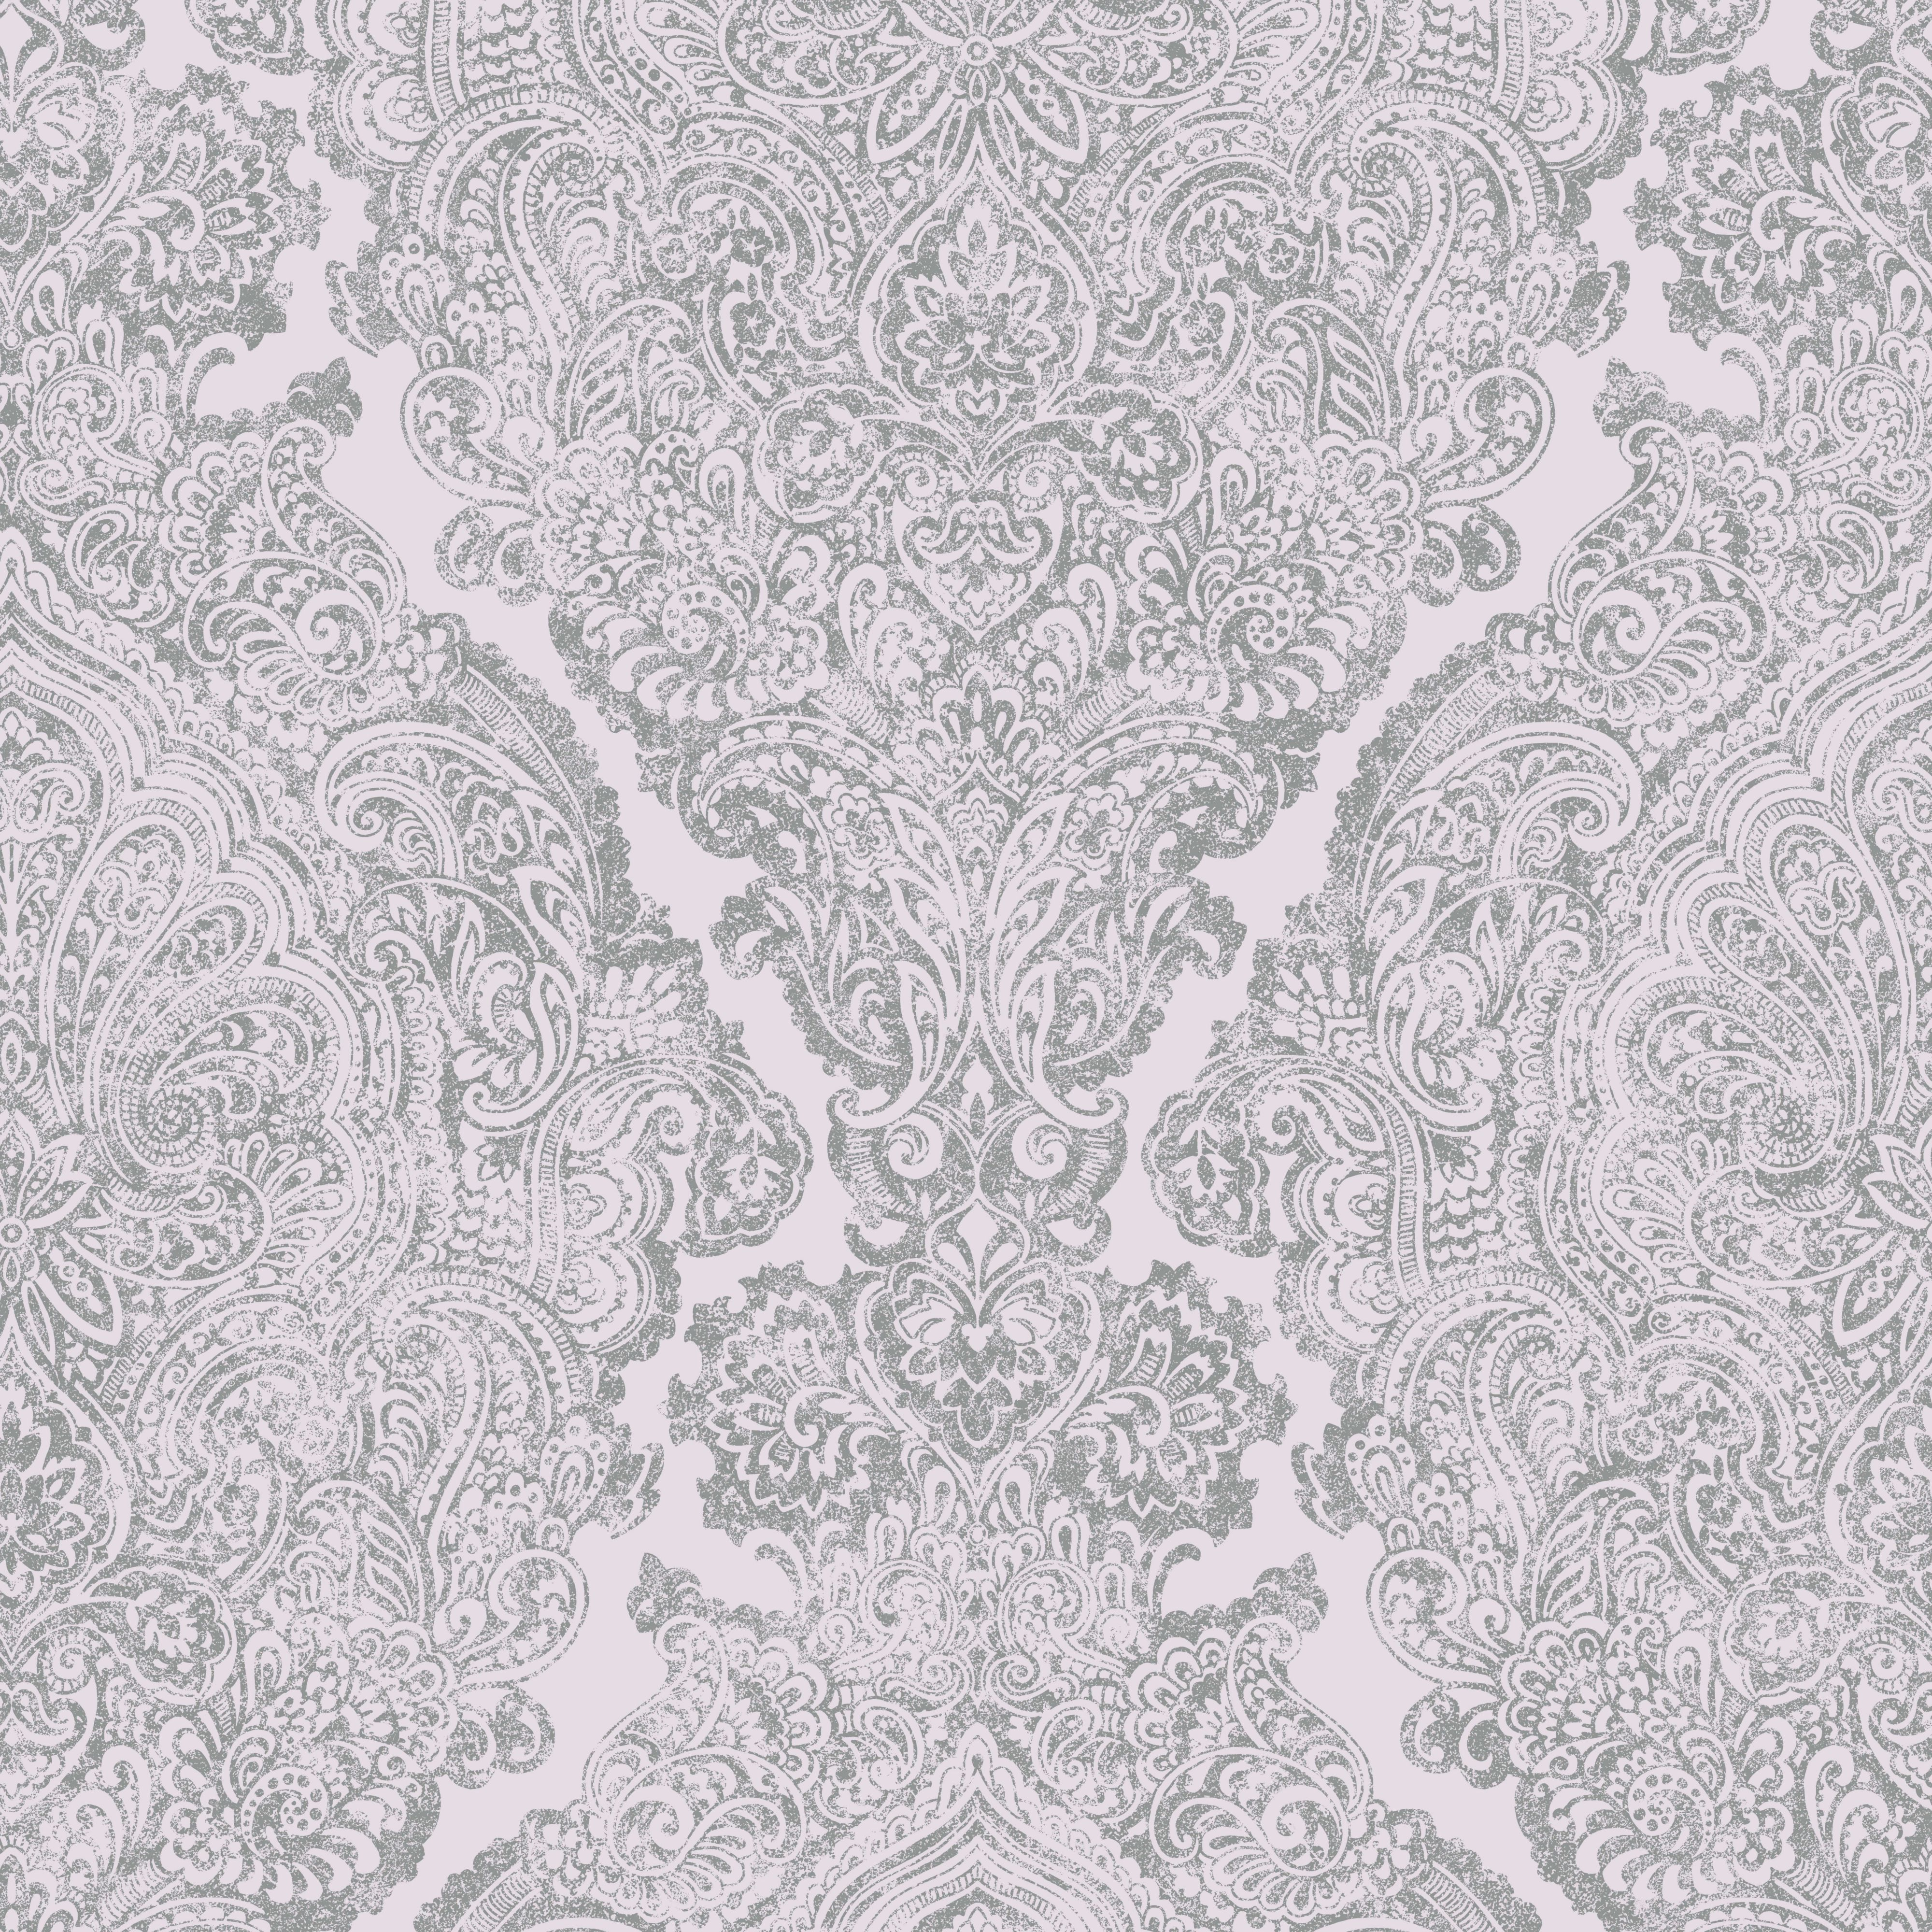 Graham   Brown Fibrous Windsor Lilac   Pewter Damask Metallic Wallpaper    B Q for all your home and garden supplies and advice on all the latest DIY  trends. Graham   Brown Fibrous Windsor Lilac   Pewter Damask Metallic